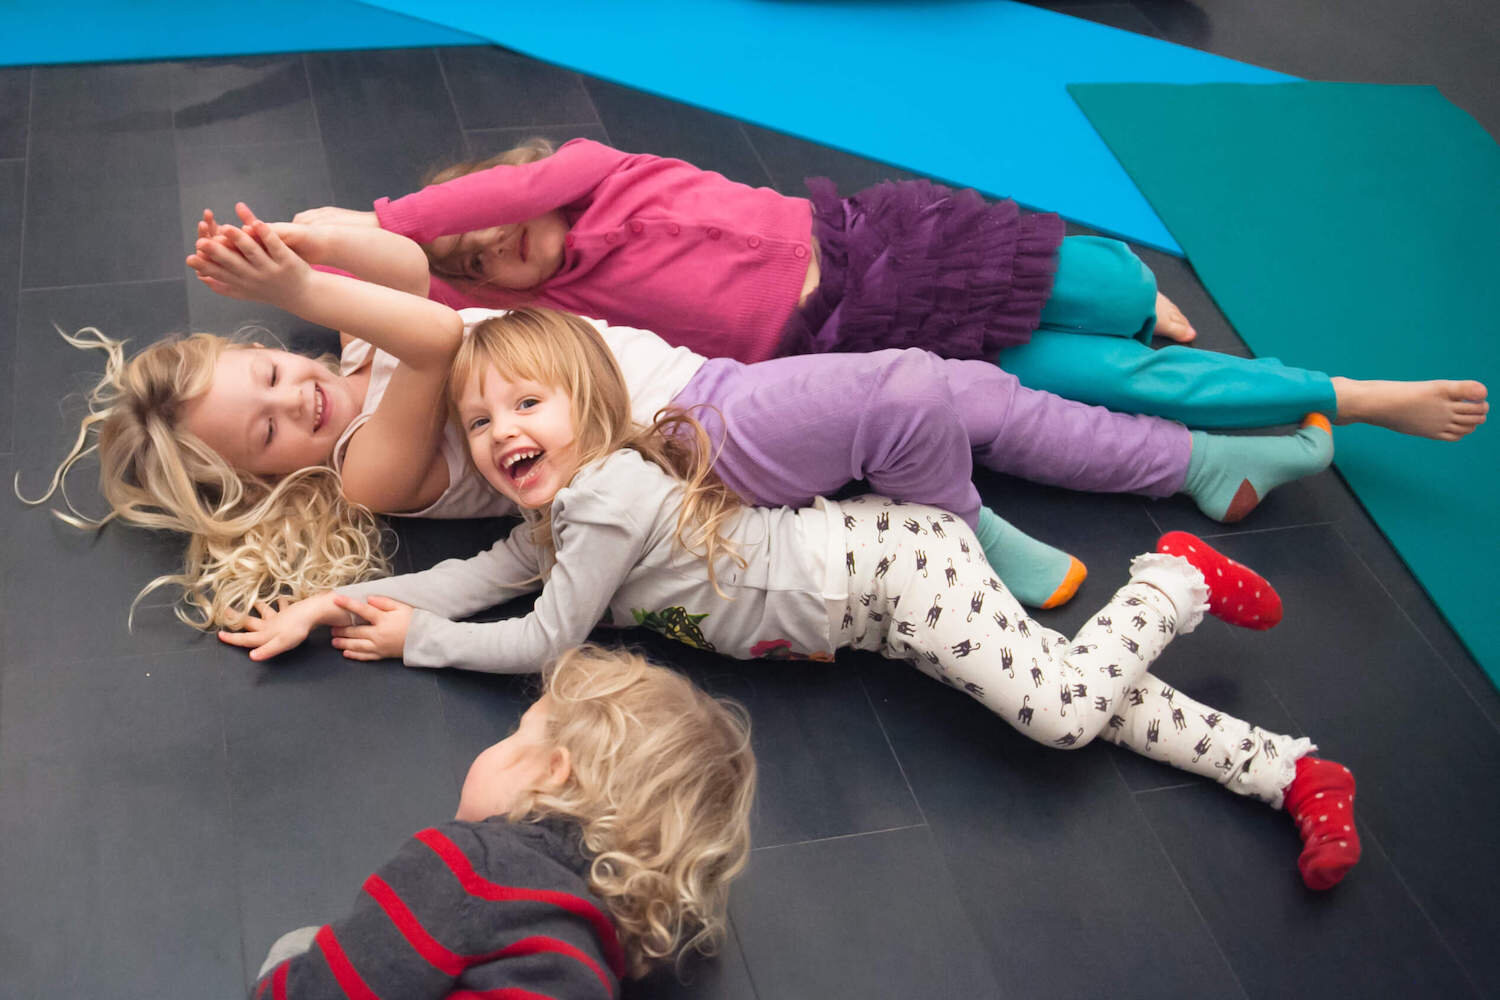 Children playing and laughing on the floor